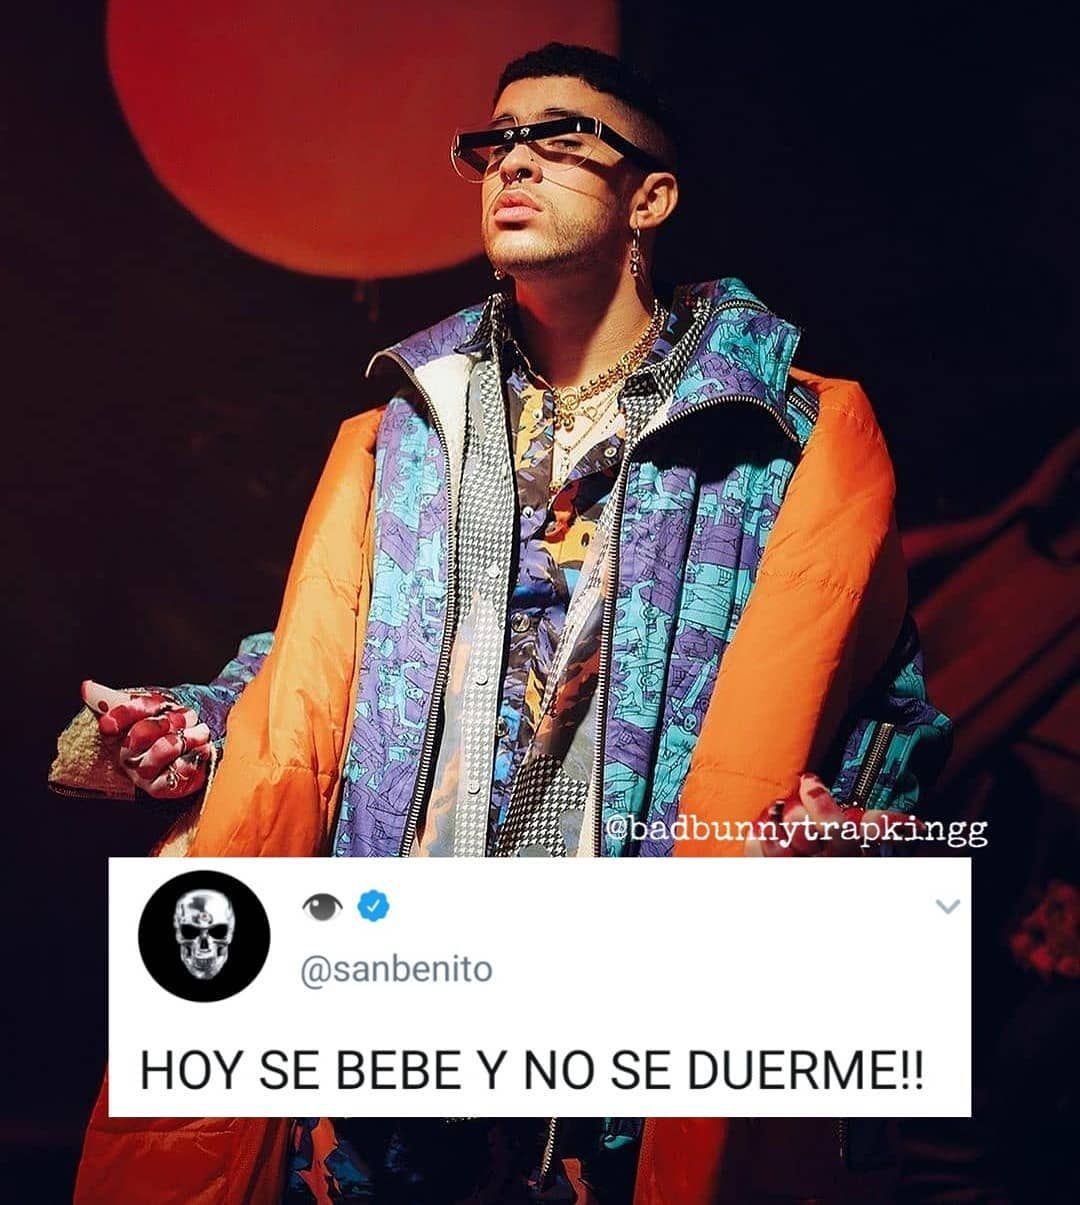 Pin by 𝑳𝒖𝒗𝒍𝒆𝒆 🐉🖤 on bad bunny ️. in 2020 Bunny wallpaper